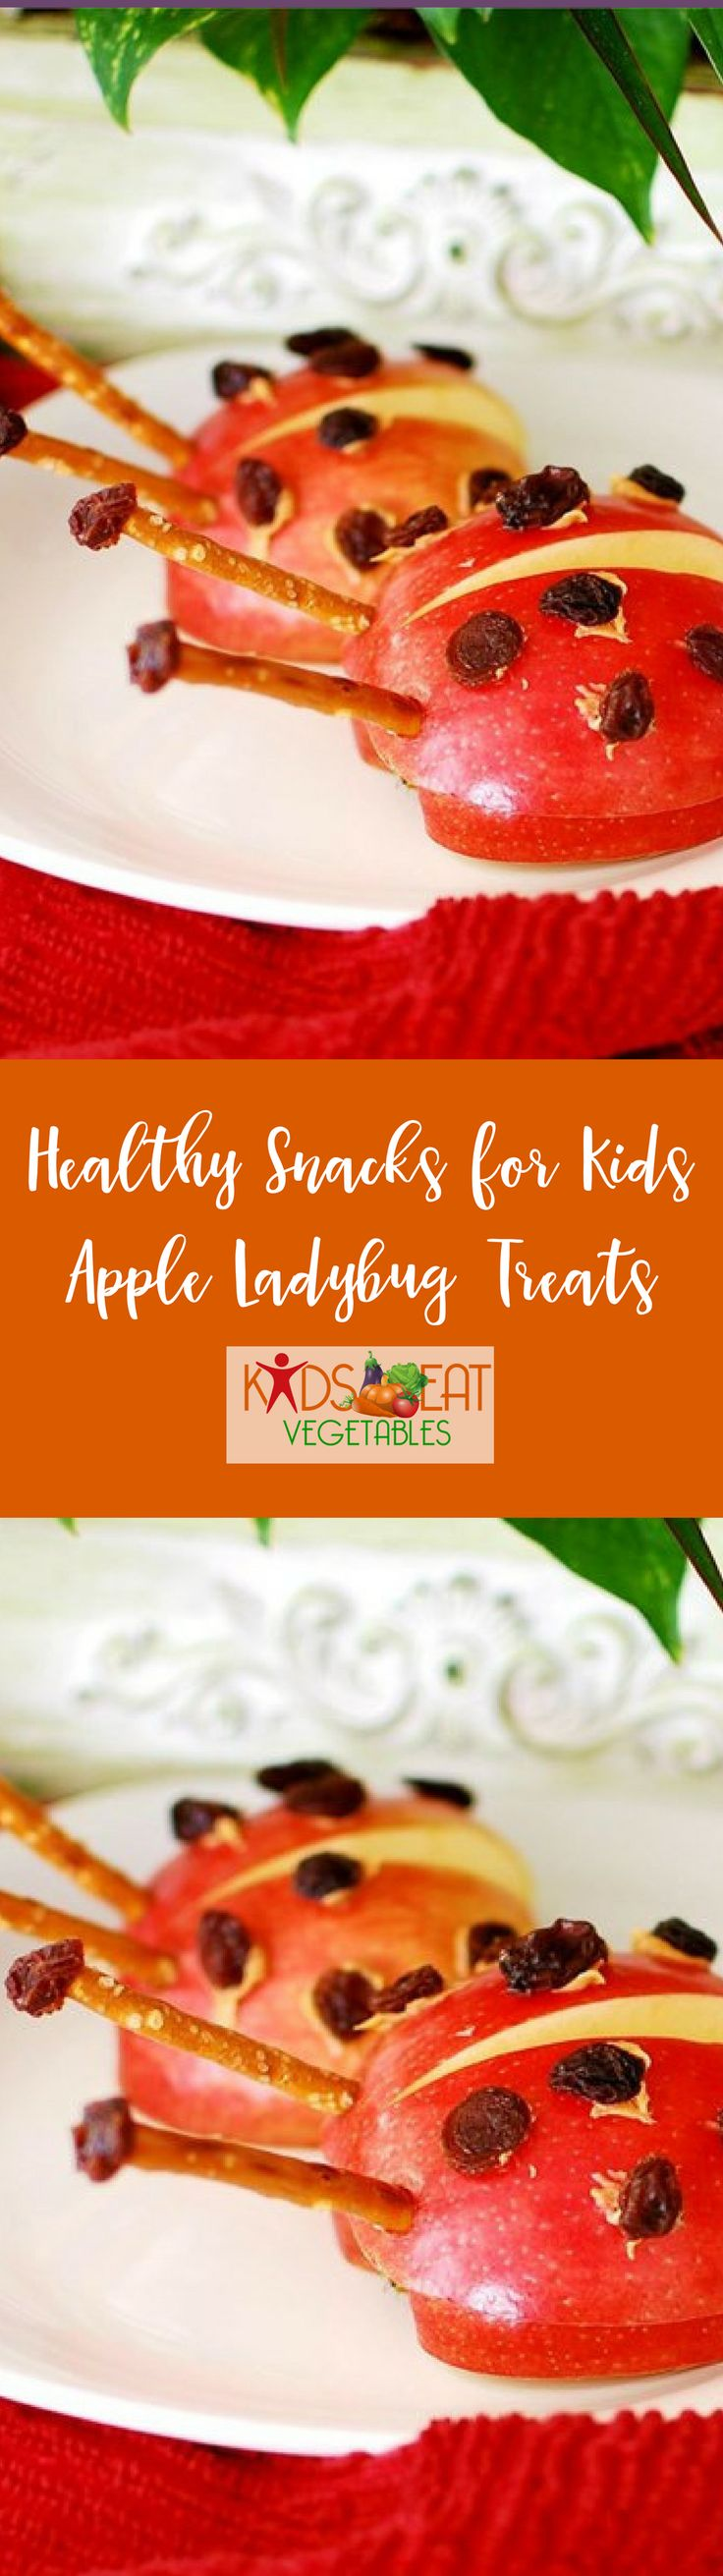 Your kids will be delighted when you serve them red apples that are decorated like ladybugs. This simple snack is fun for the kids and easy to make. Slice your apples in half, dab on some natural peanut butter and splash a few spots on its back with raisi